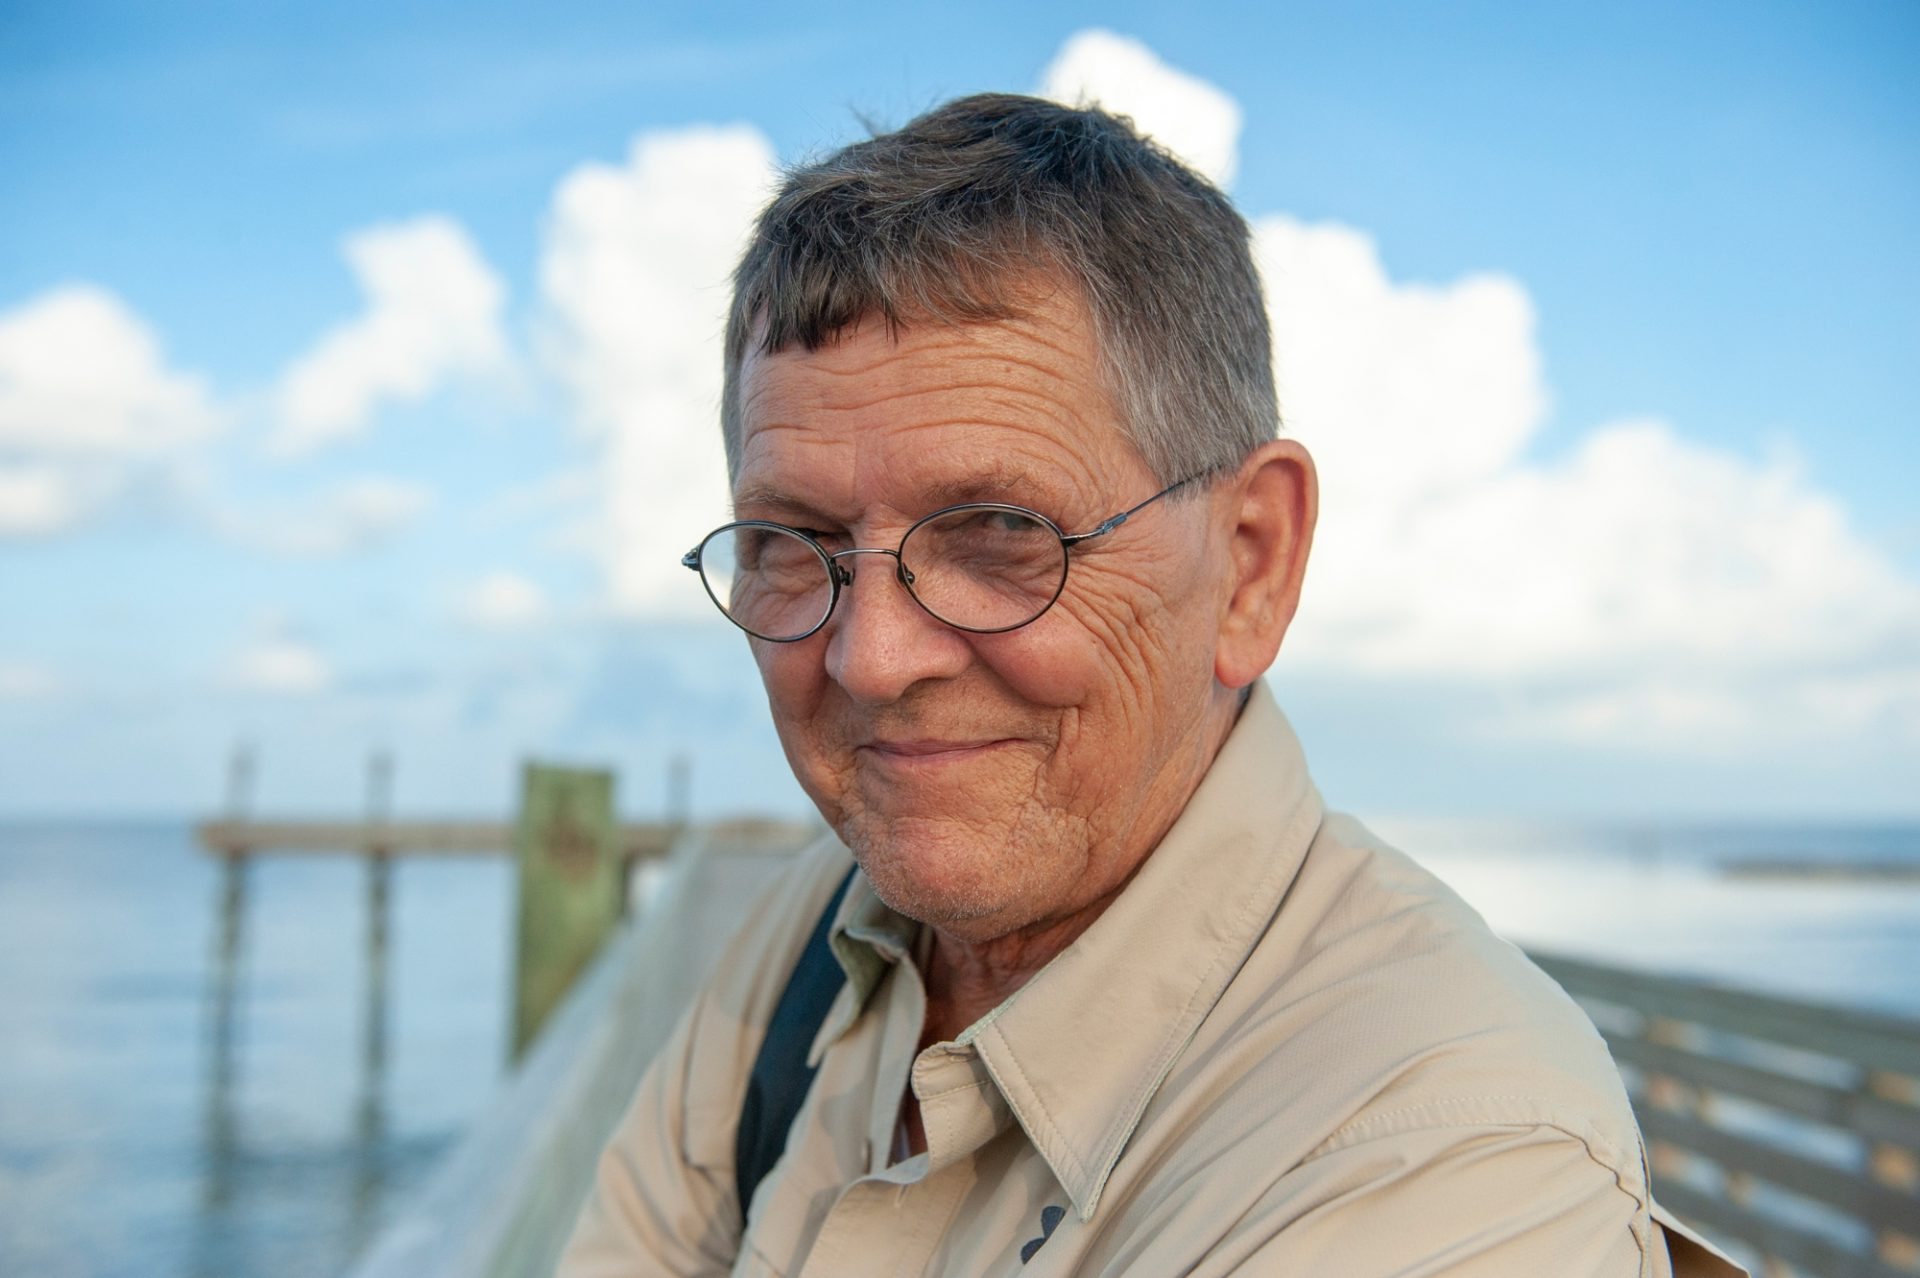 Photo: A portrait of a man on the dock at Grand Isle, Louisiana.